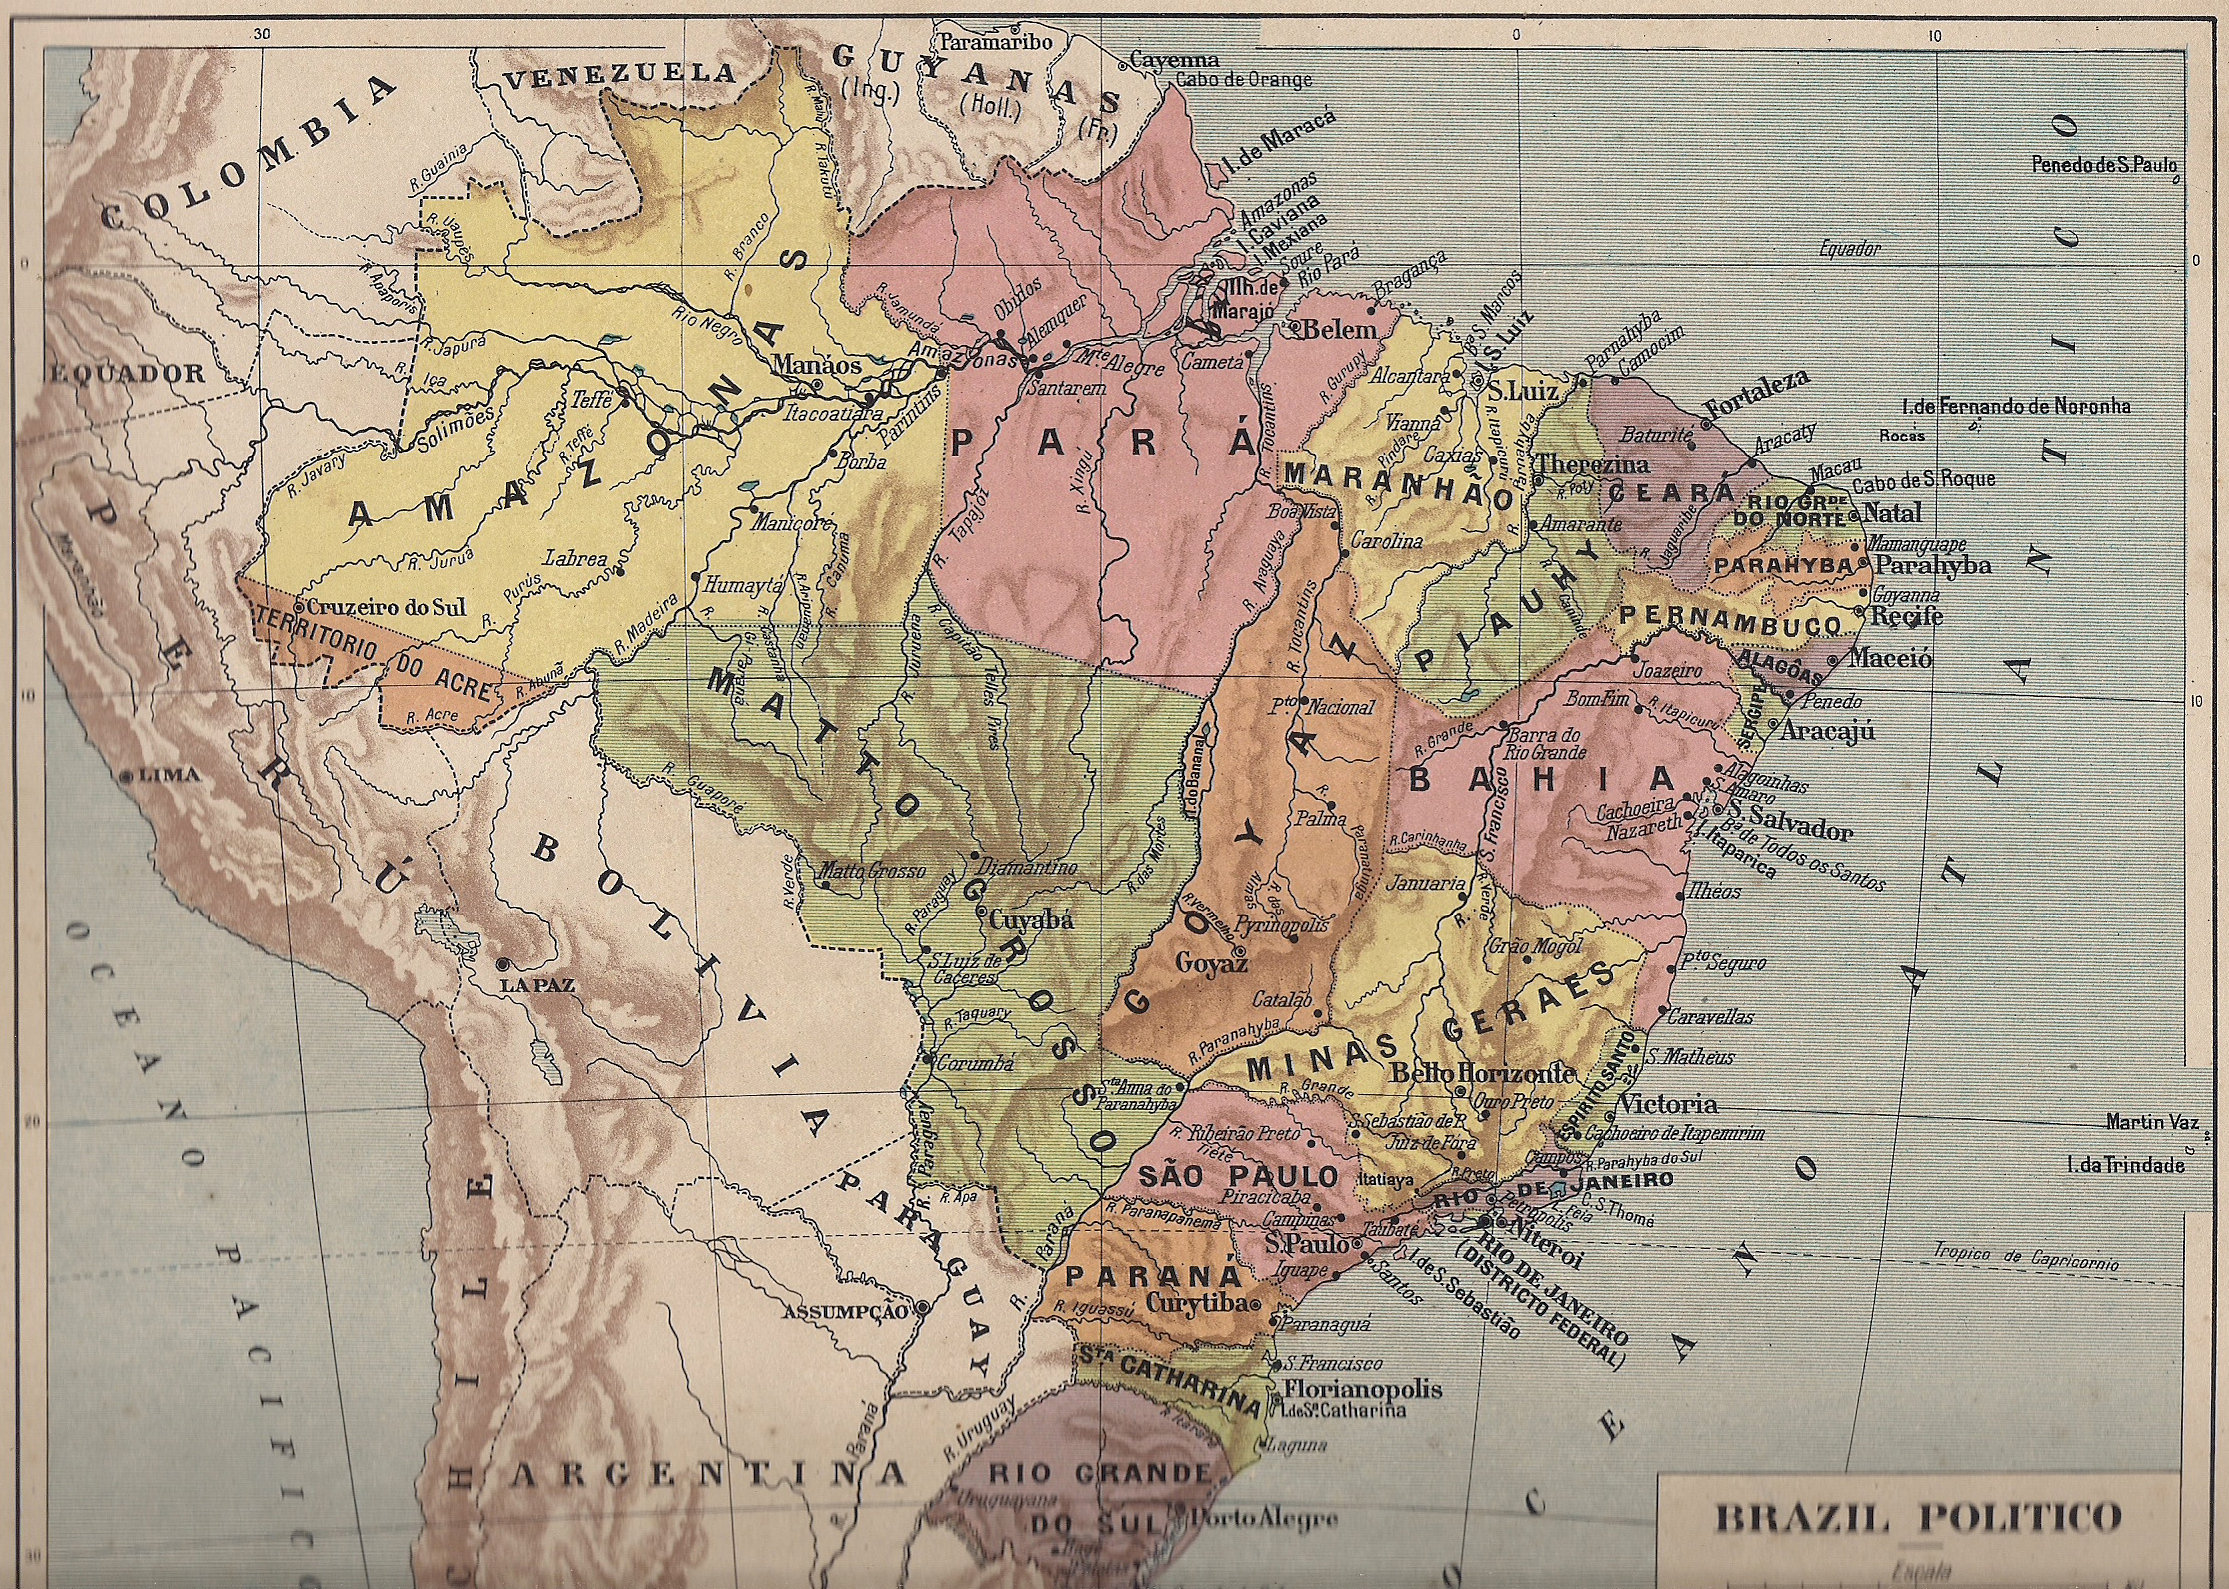 https://upload.wikimedia.org/wikipedia/commons/4/4b/Mapa_do_Brasil_-_1922.jpg